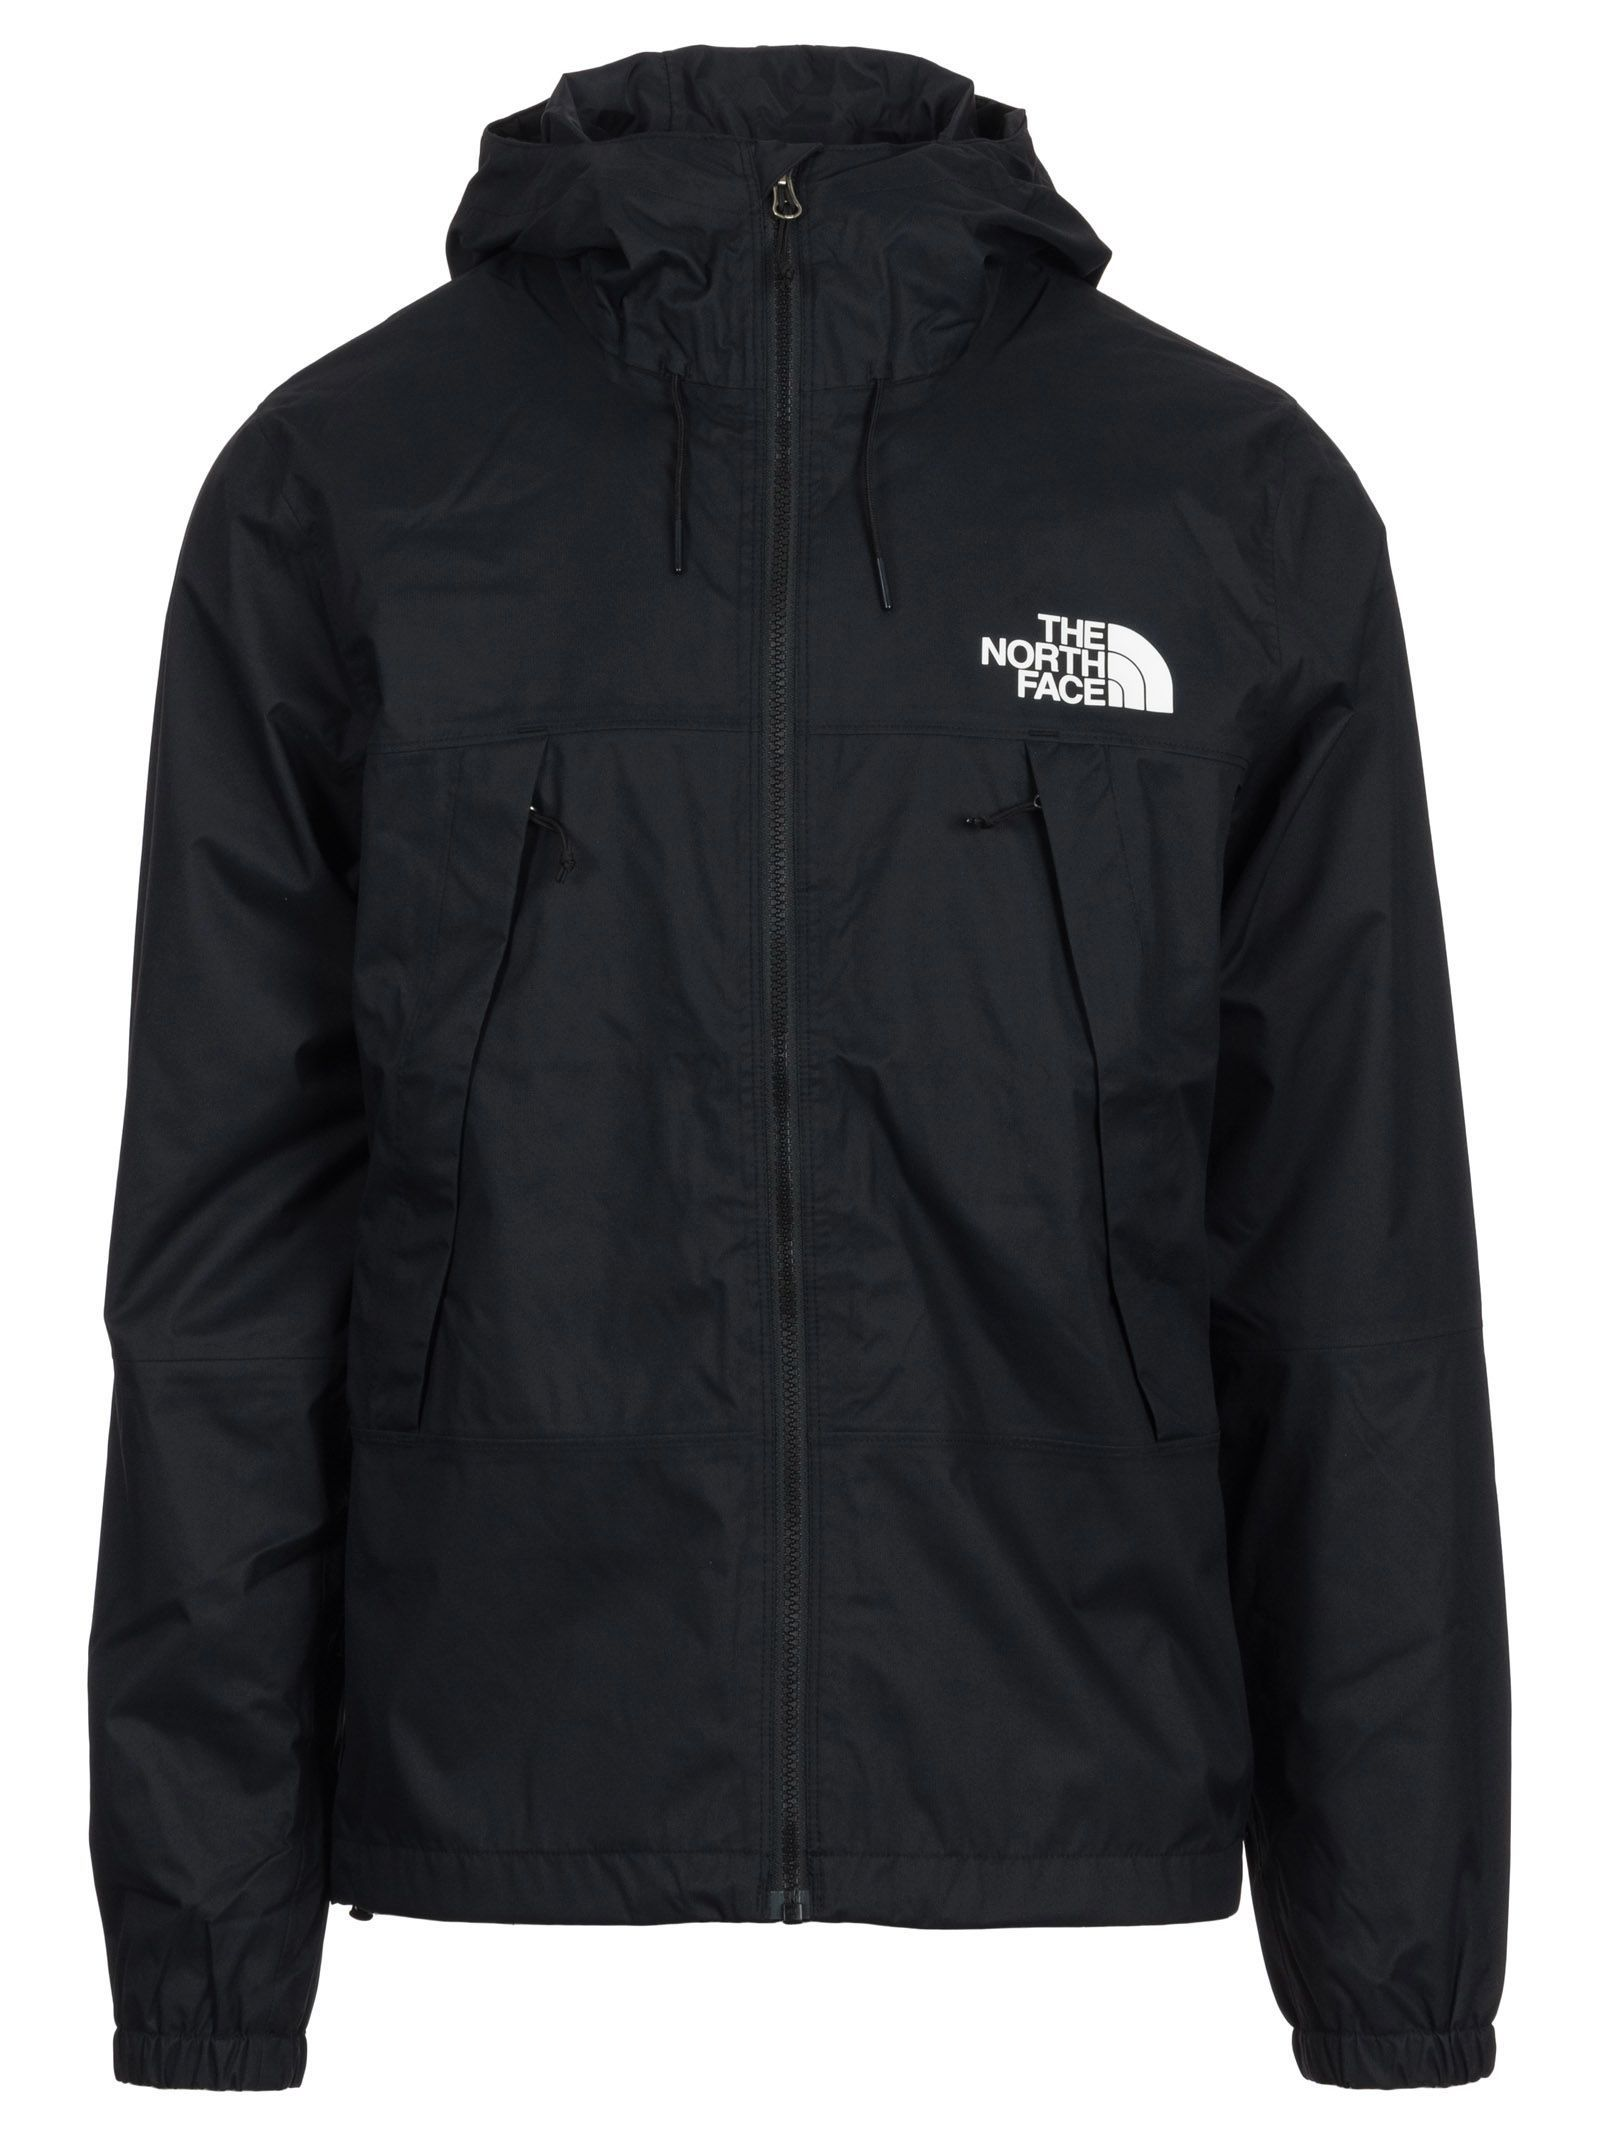 2a9303fd8 THE NORTH FACE NYLON JACKET. #thenorthface #cloth | The North Face ...